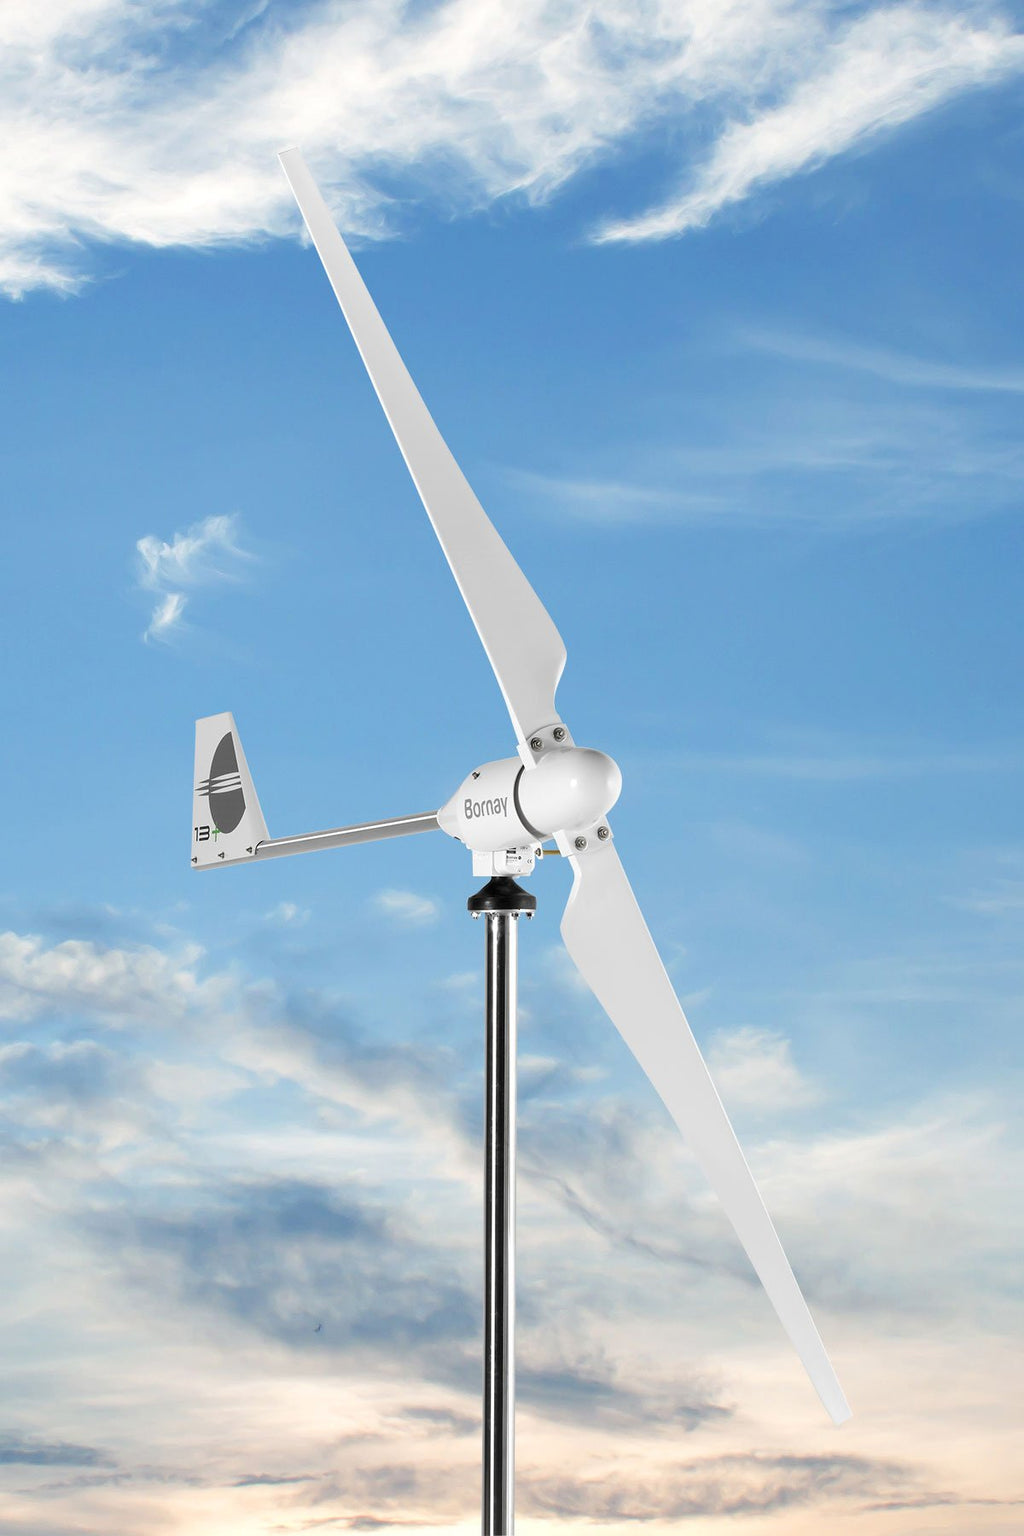 Wind Turbine - Bornay | Wind Turbine Wind 13+